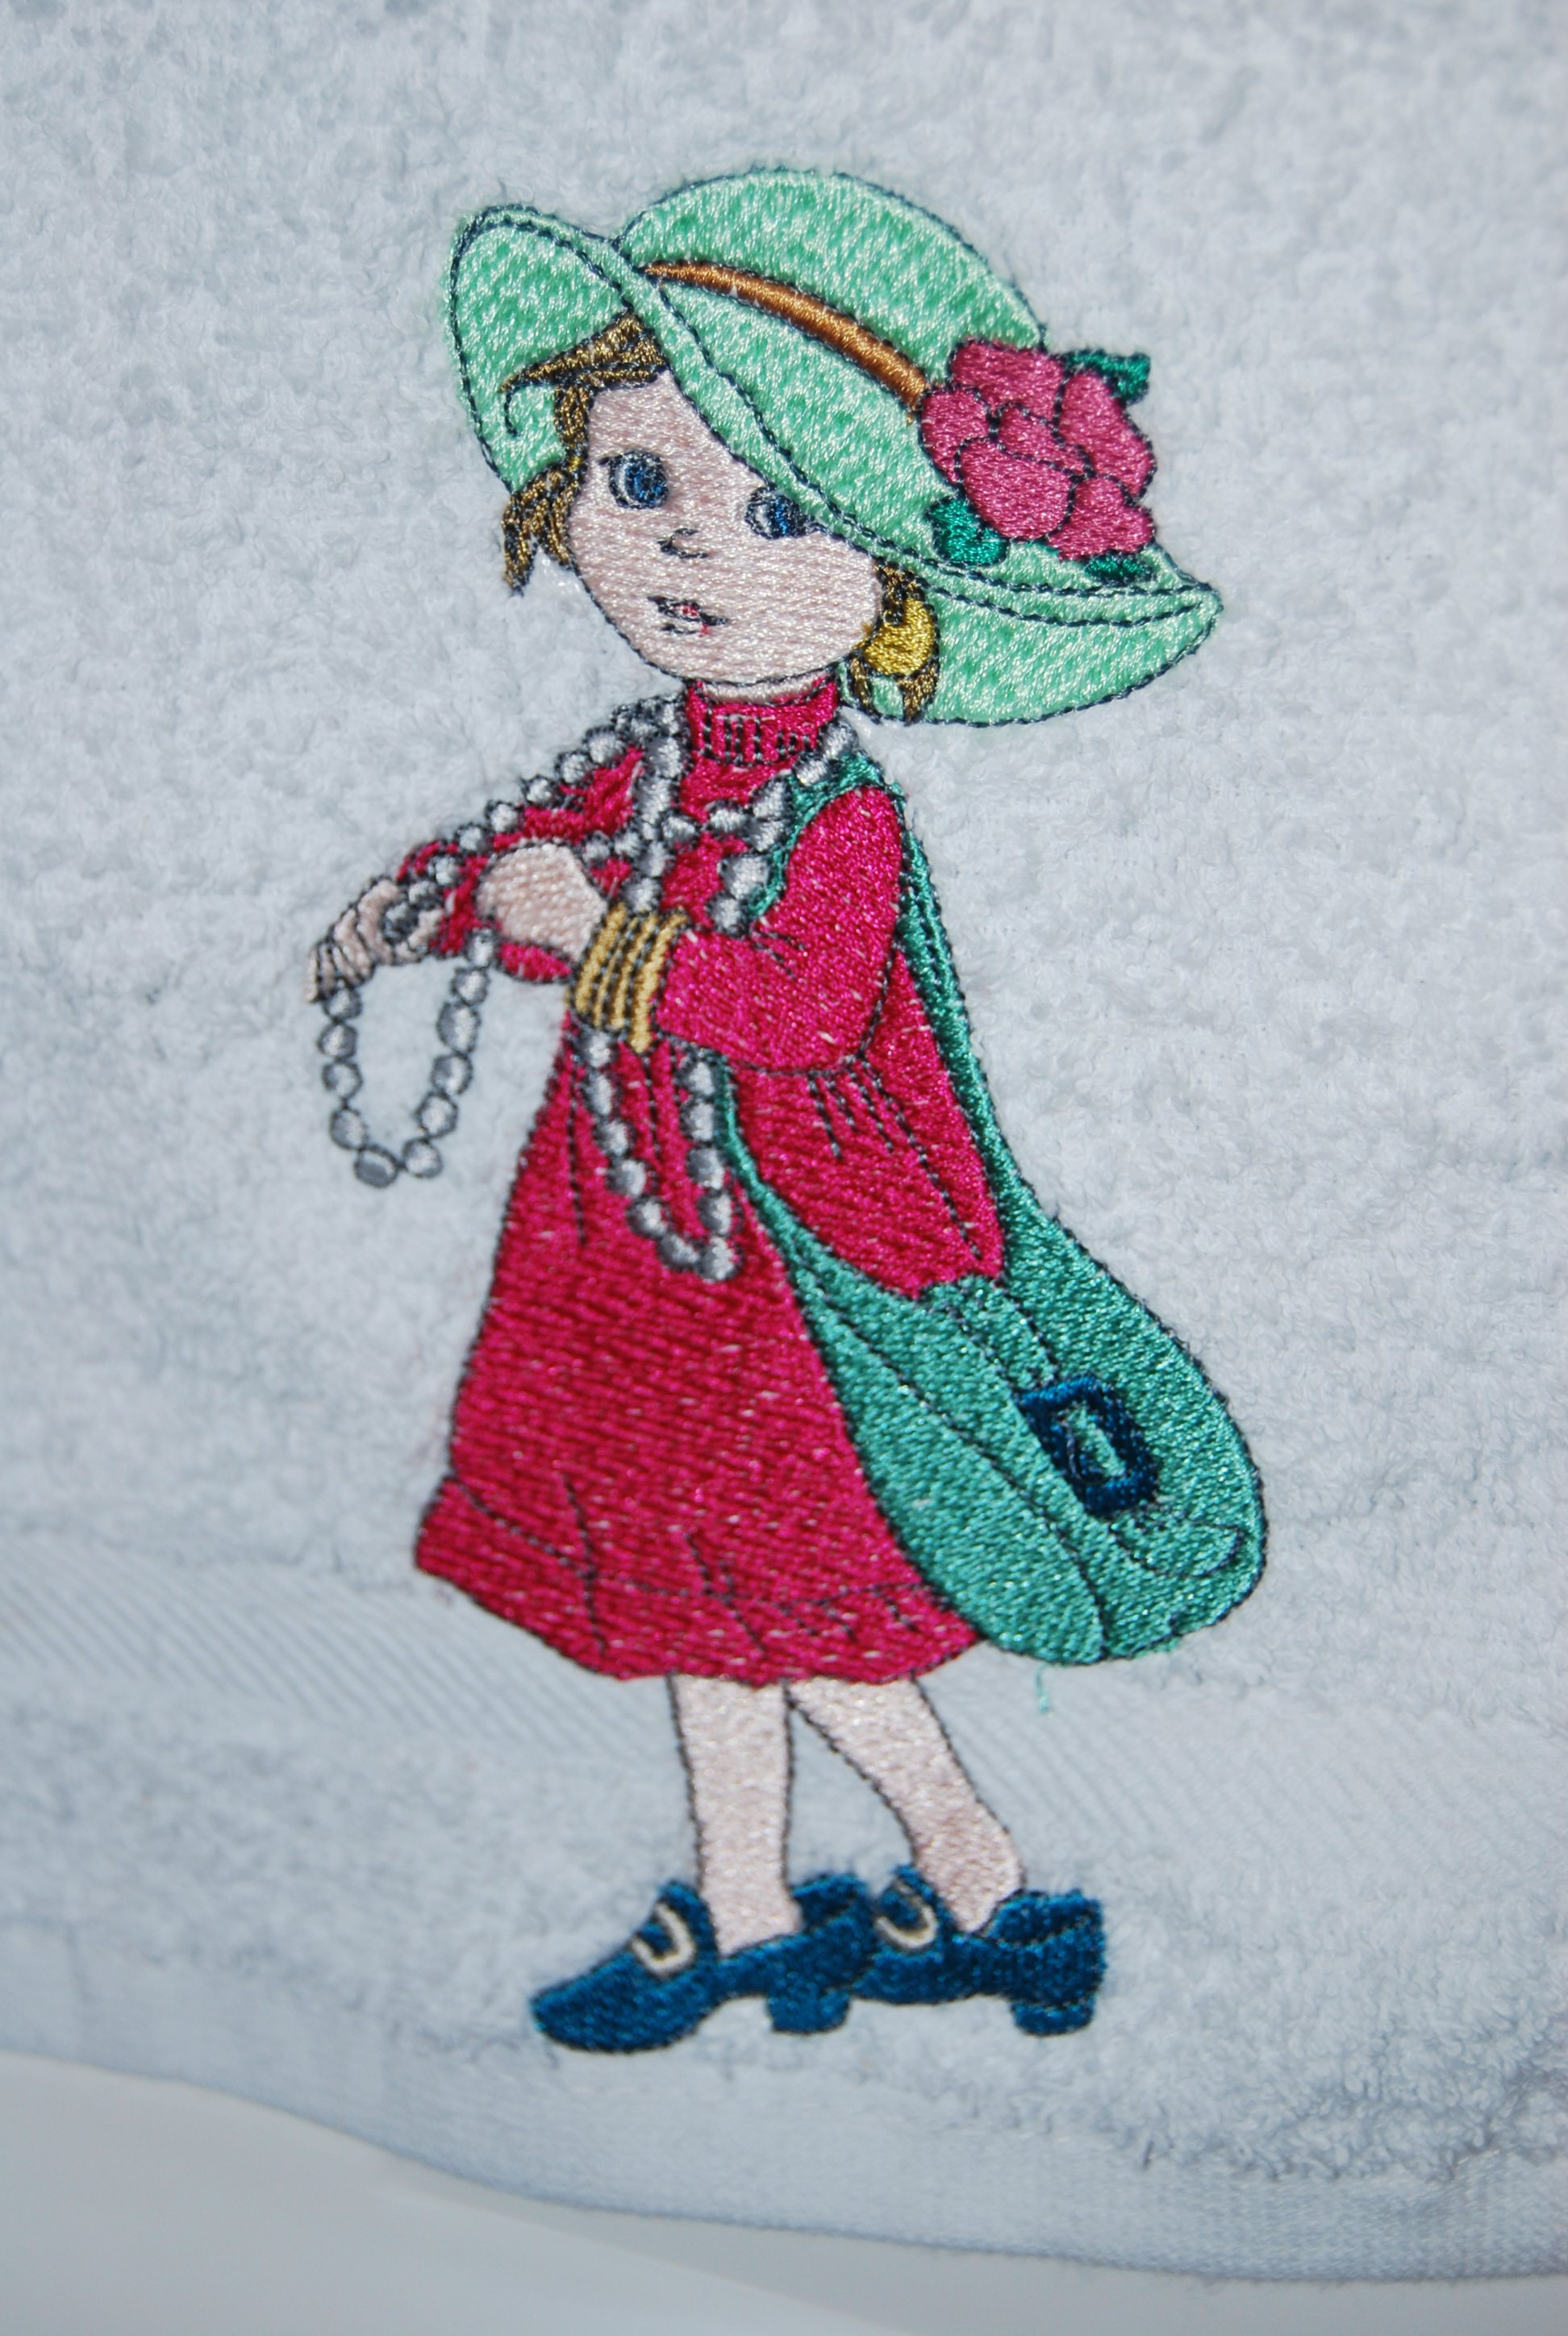 Free Christmas Embroidery Patterns Free Embroidery Designs Cute Embroidery Designs